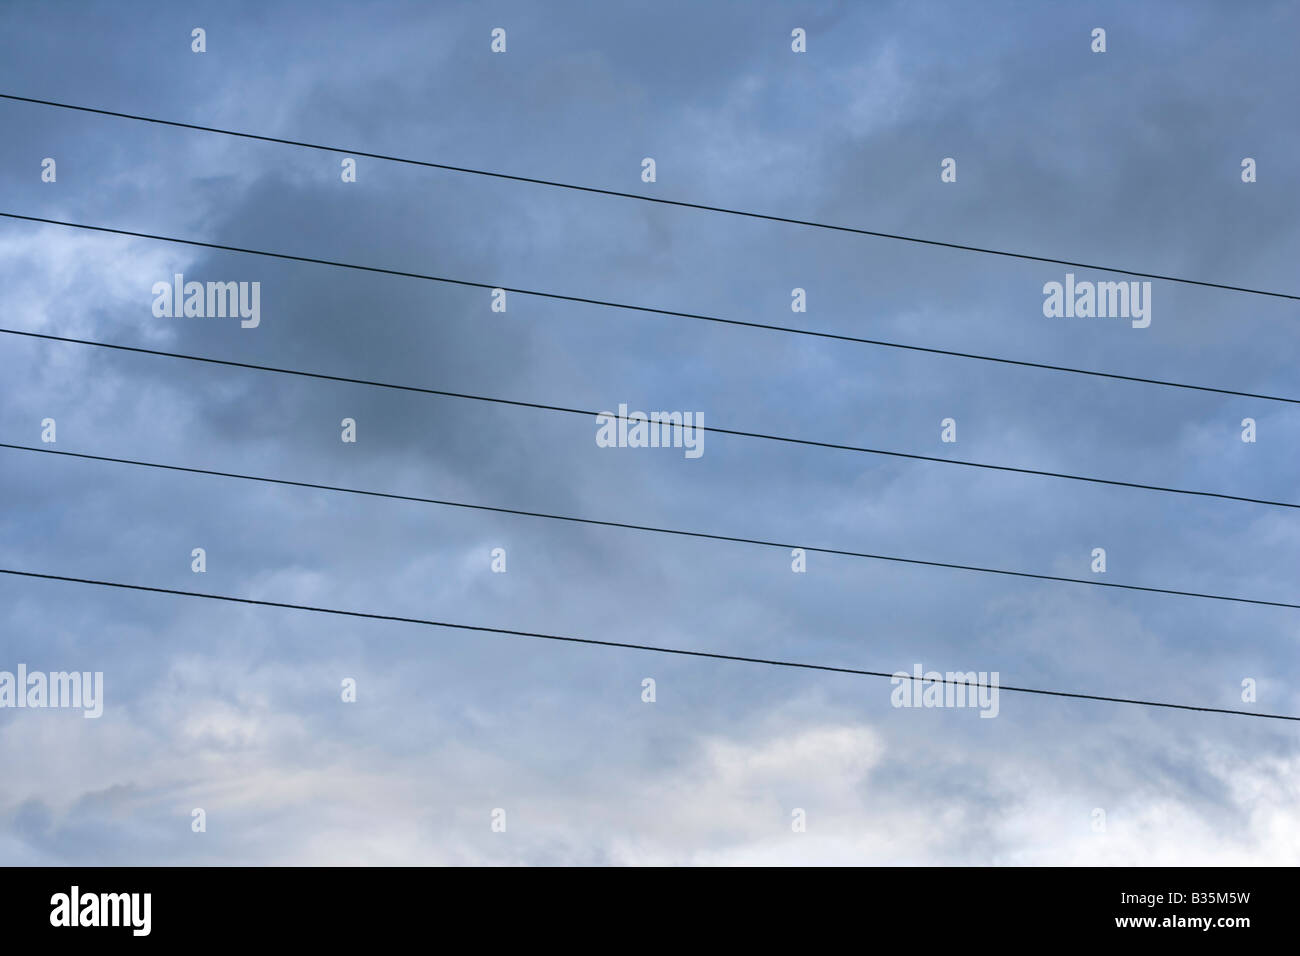 Wires Telecommunications Stock Photos & Wires Telecommunications ...